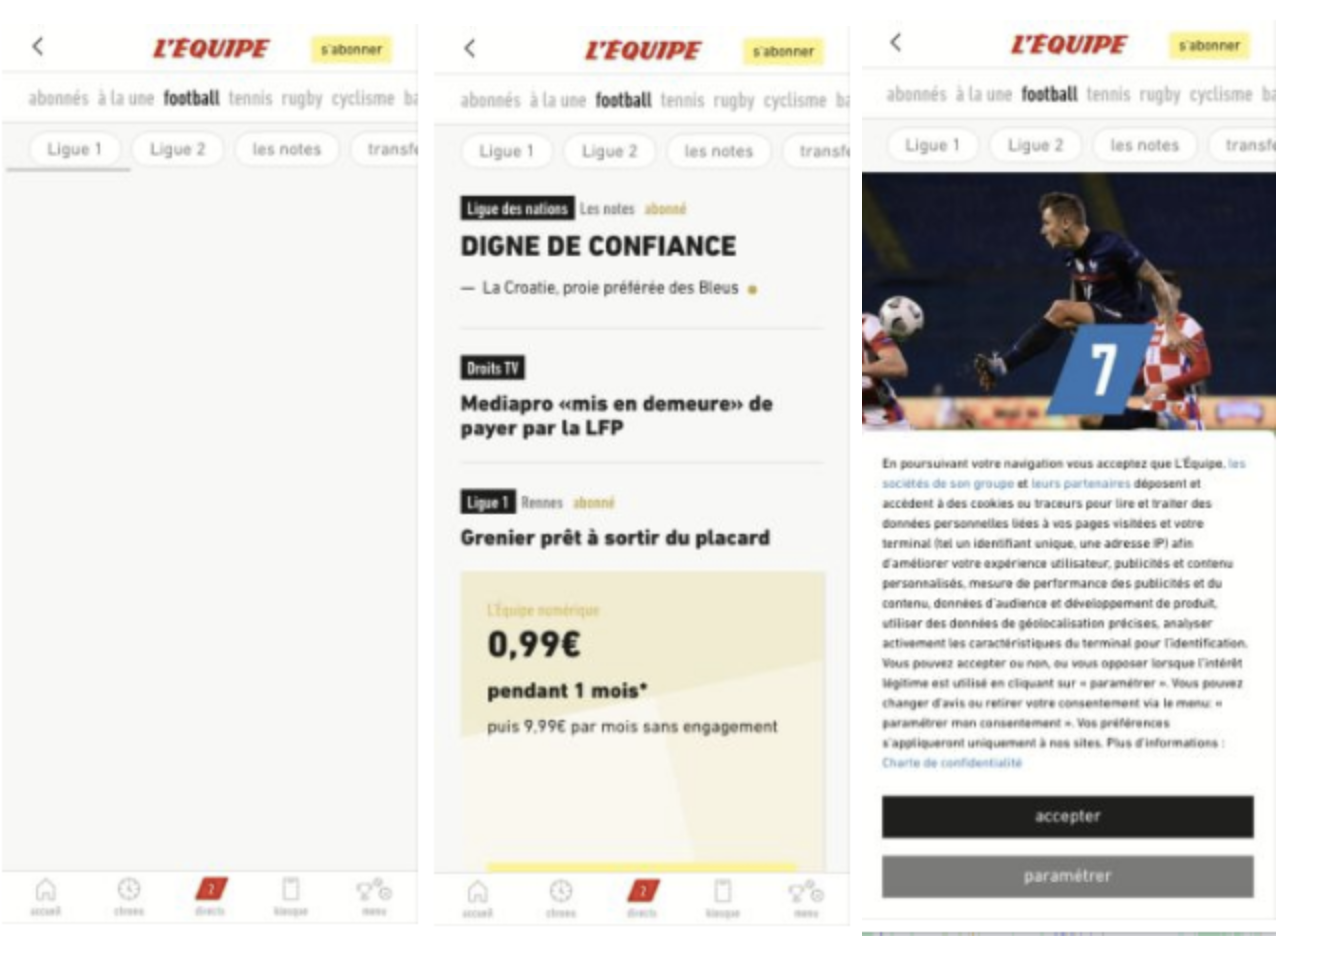 lequipe website